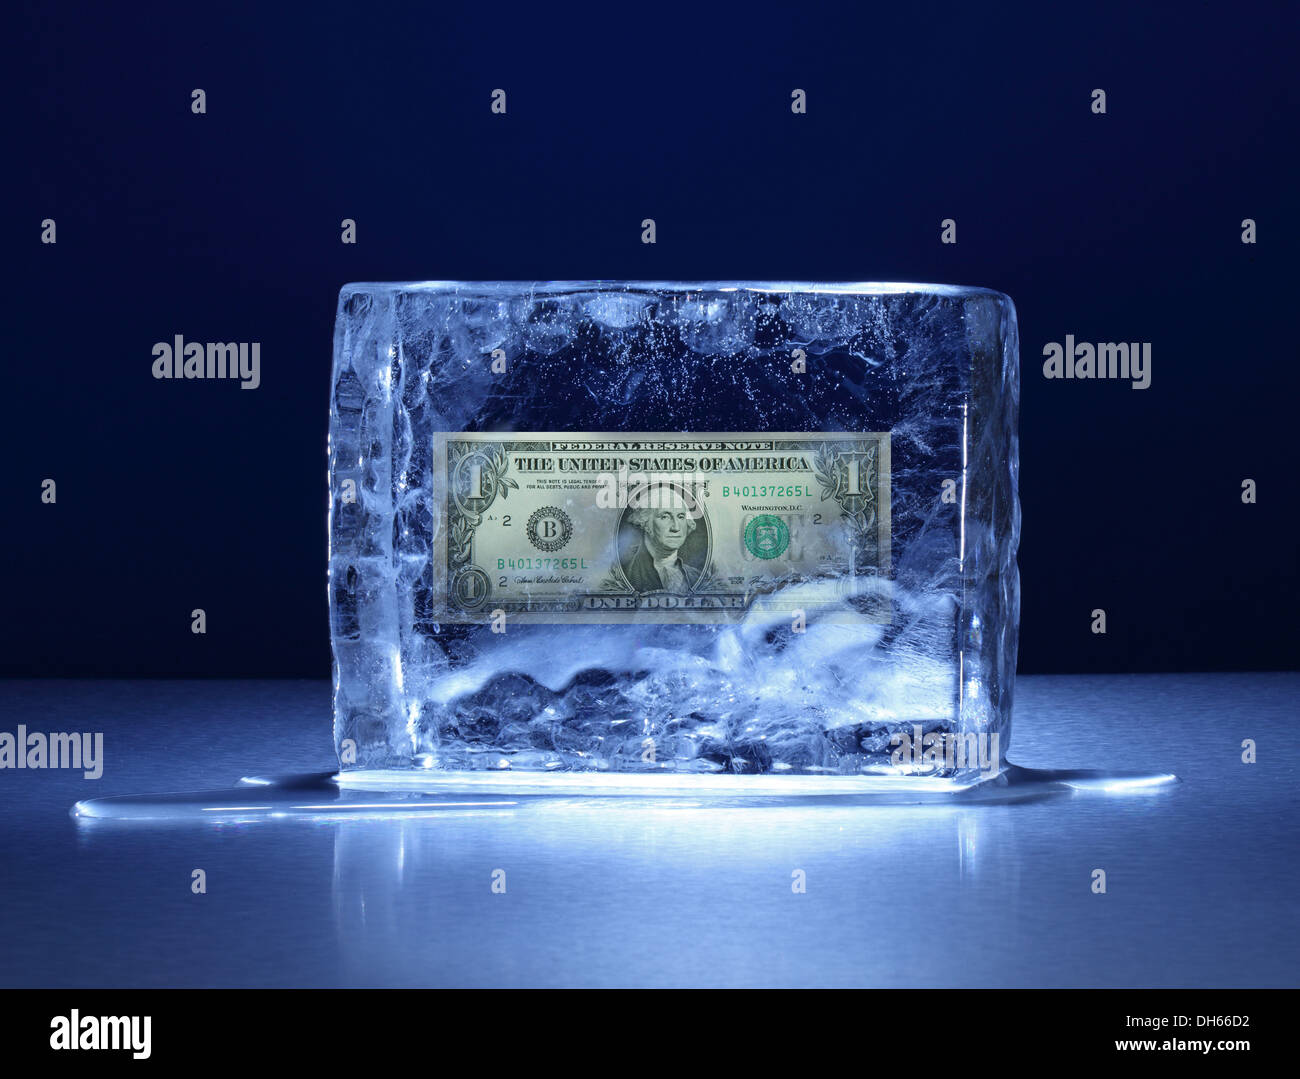 Un billet de un dollar US congelé dans un bloc de glace claire Photo Stock